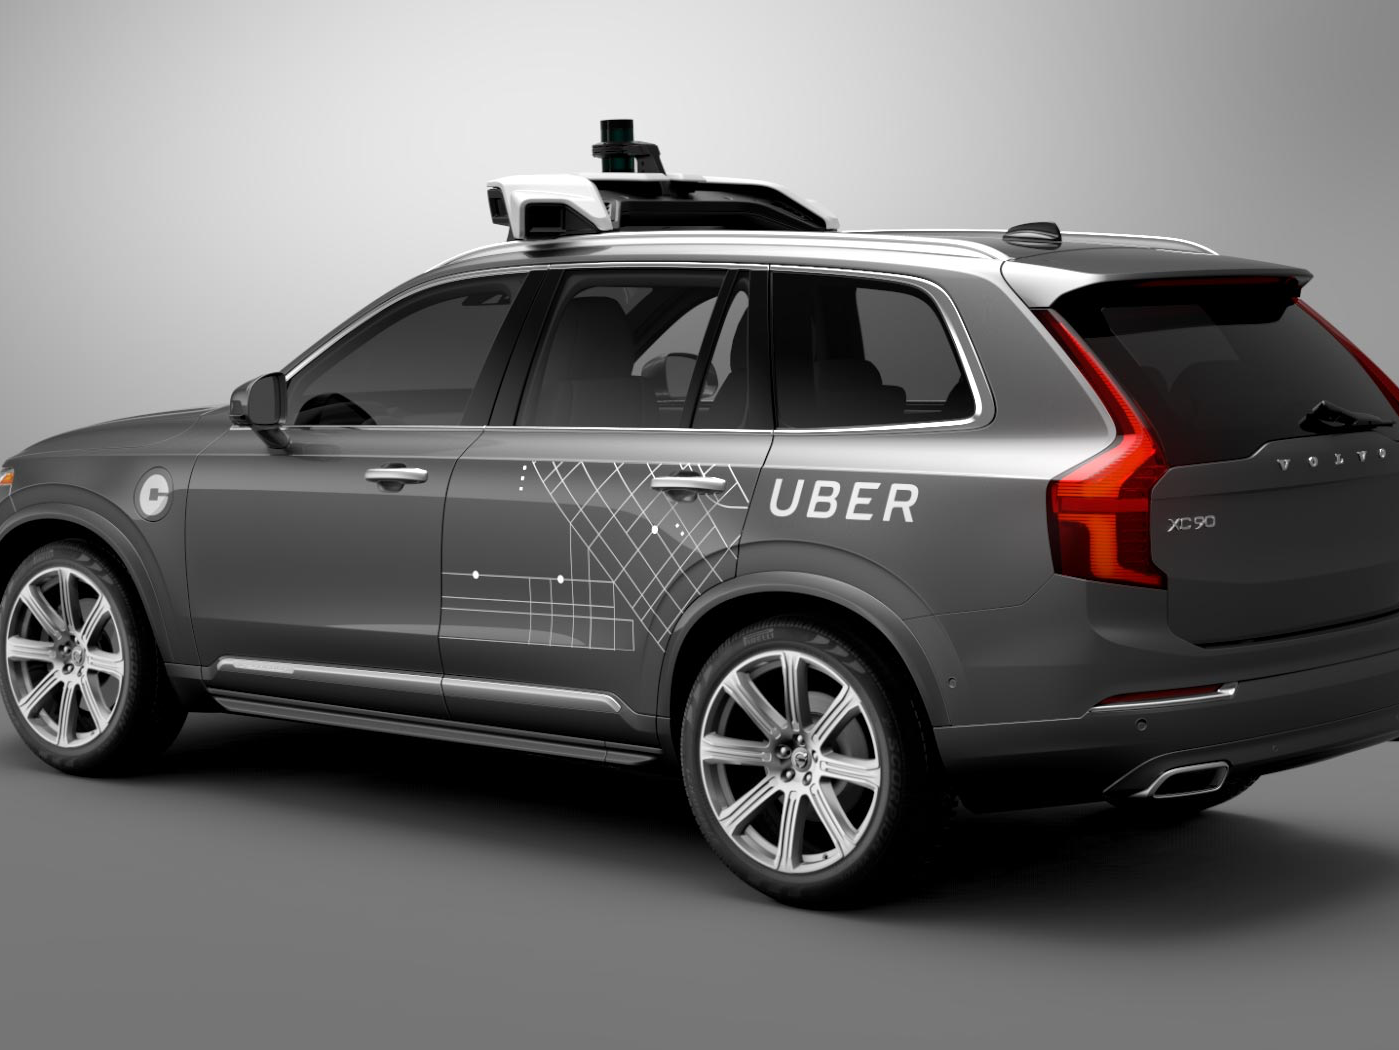 Uber's Self-Driving Cars Will Pick Up Passengers This Month